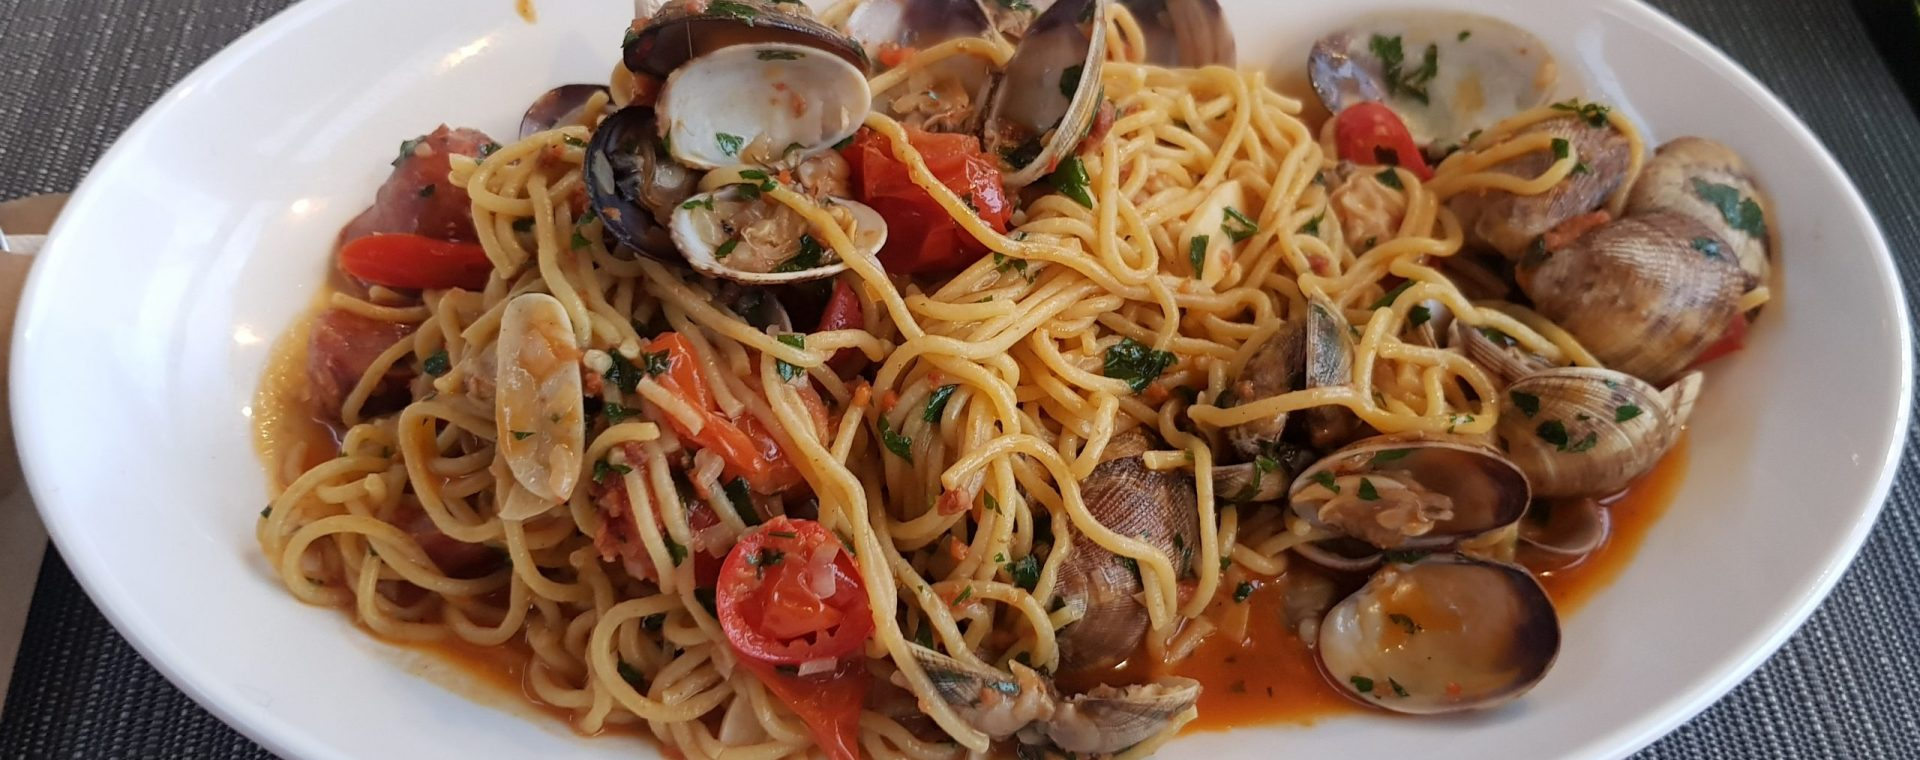 The Bracebridge - Spaghetti Vongole